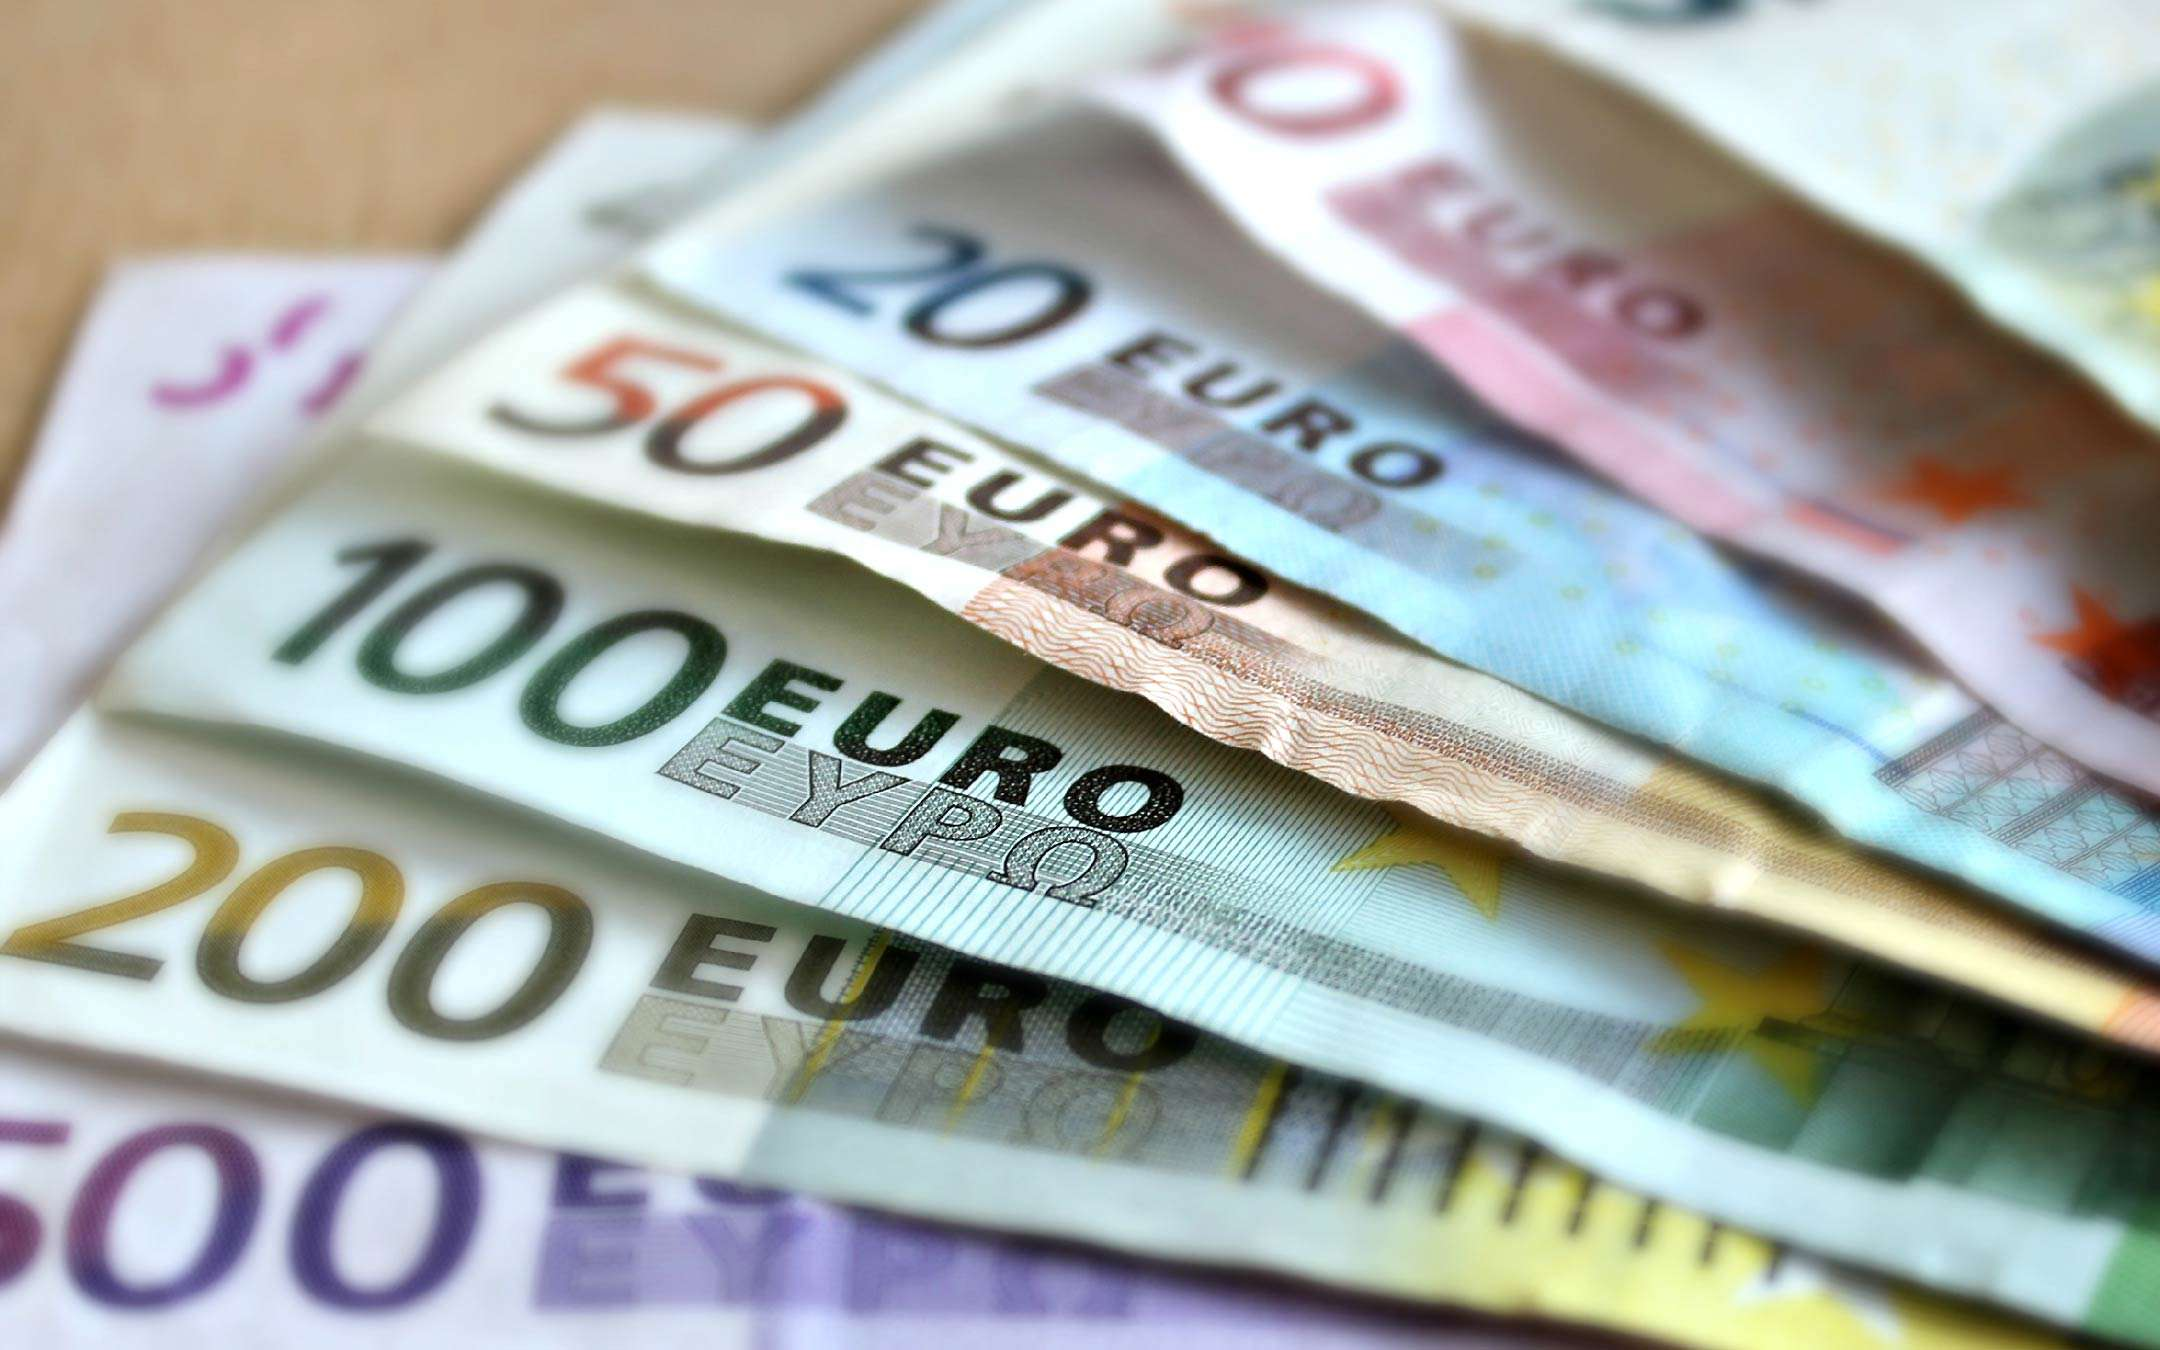 600 euros from INPS: watch out for the phishing scam